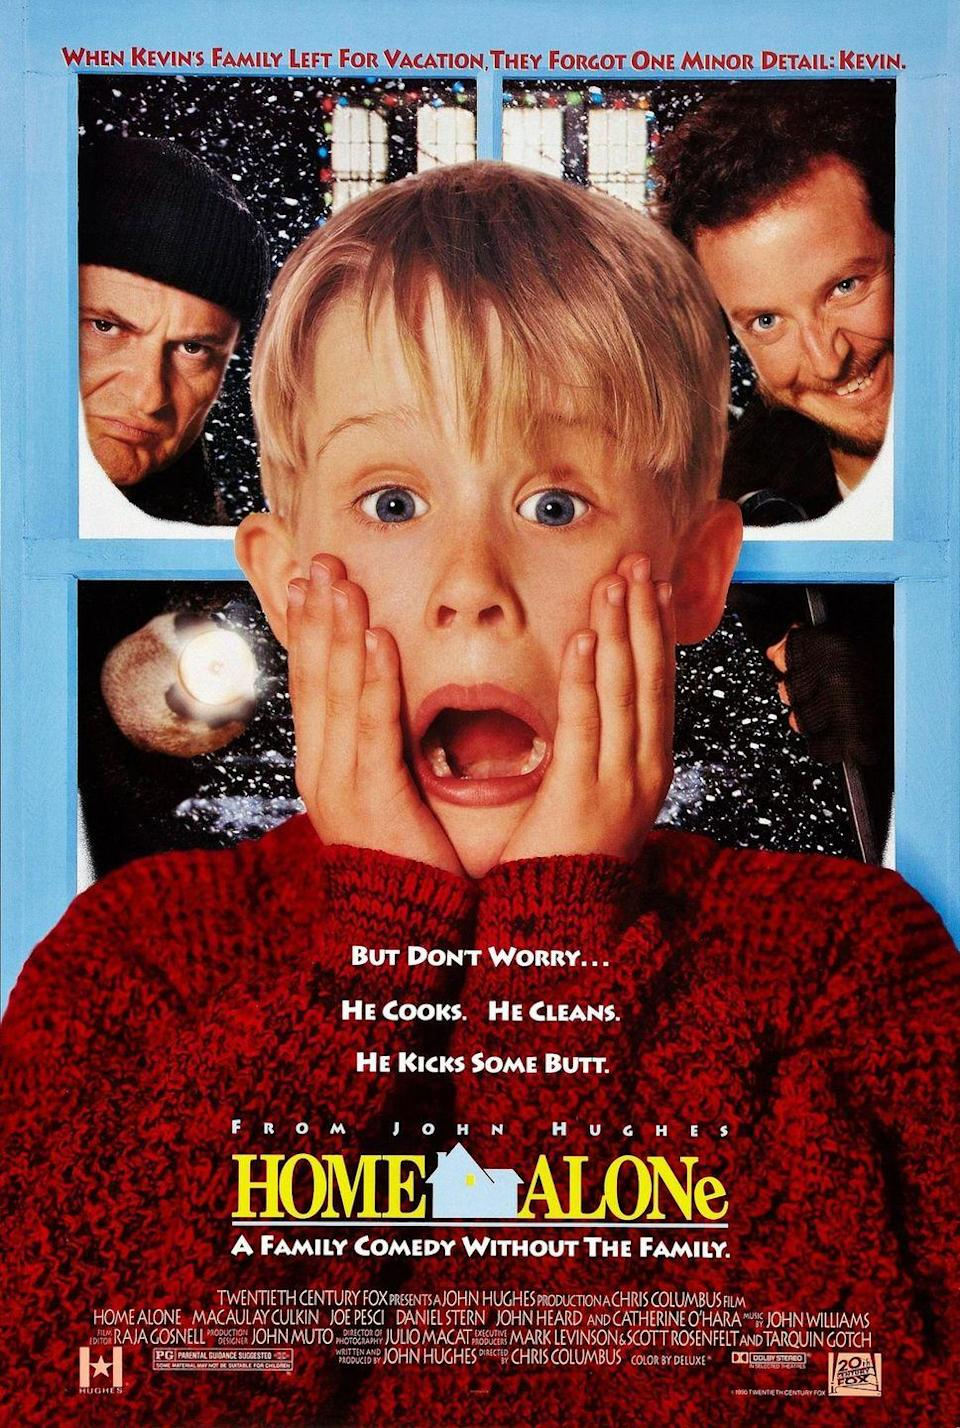 "<p>Inspiring a series of films, <em>Home Alone </em>started at 671 Lincoln Ave. It's apparently valued at $1 million dollars according to <em><a href=""https://www.zillow.com/homedetails/671-Lincoln-Ave-Winnetka-IL-60093/3360197_zpid/"" rel=""nofollow noopener"" target=""_blank"" data-ylk=""slk:Zillow"" class=""link rapid-noclick-resp"">Zillow</a></em>. </p>"